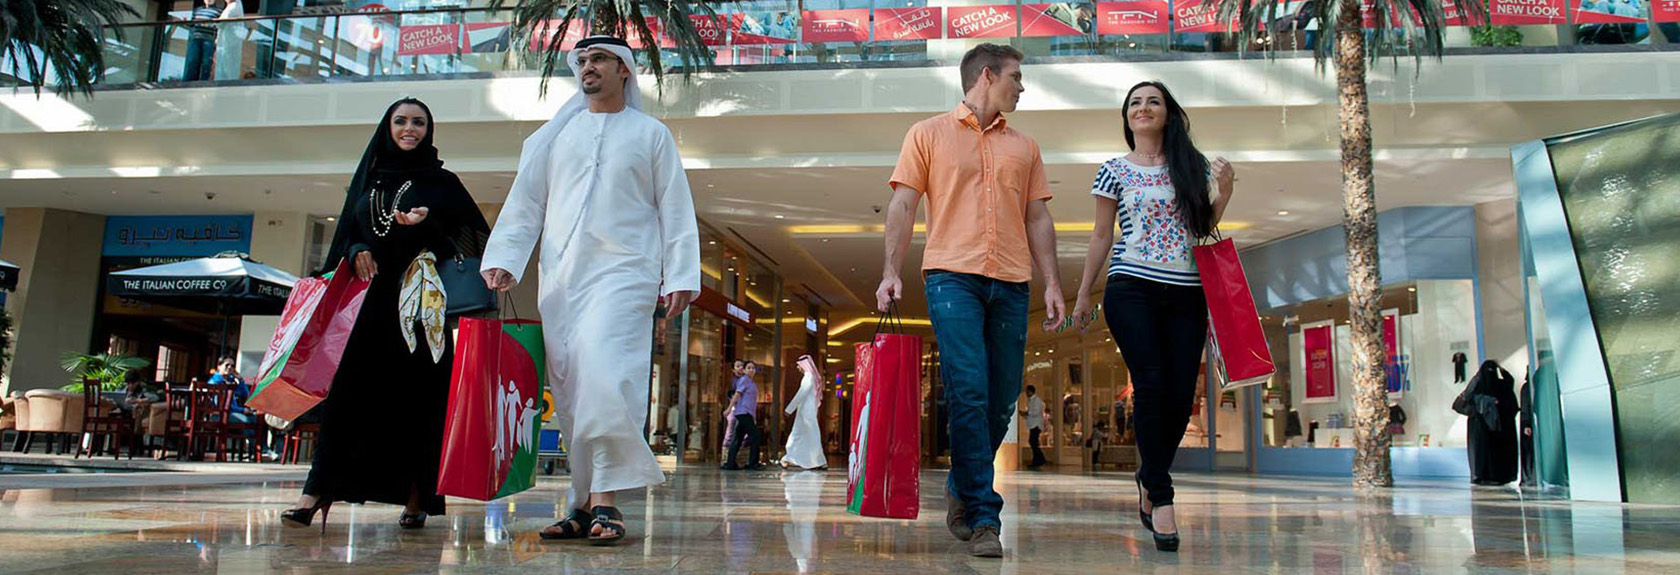 d72b7fe5ab4 Shopping in Dubai   shopping malls in Dubai